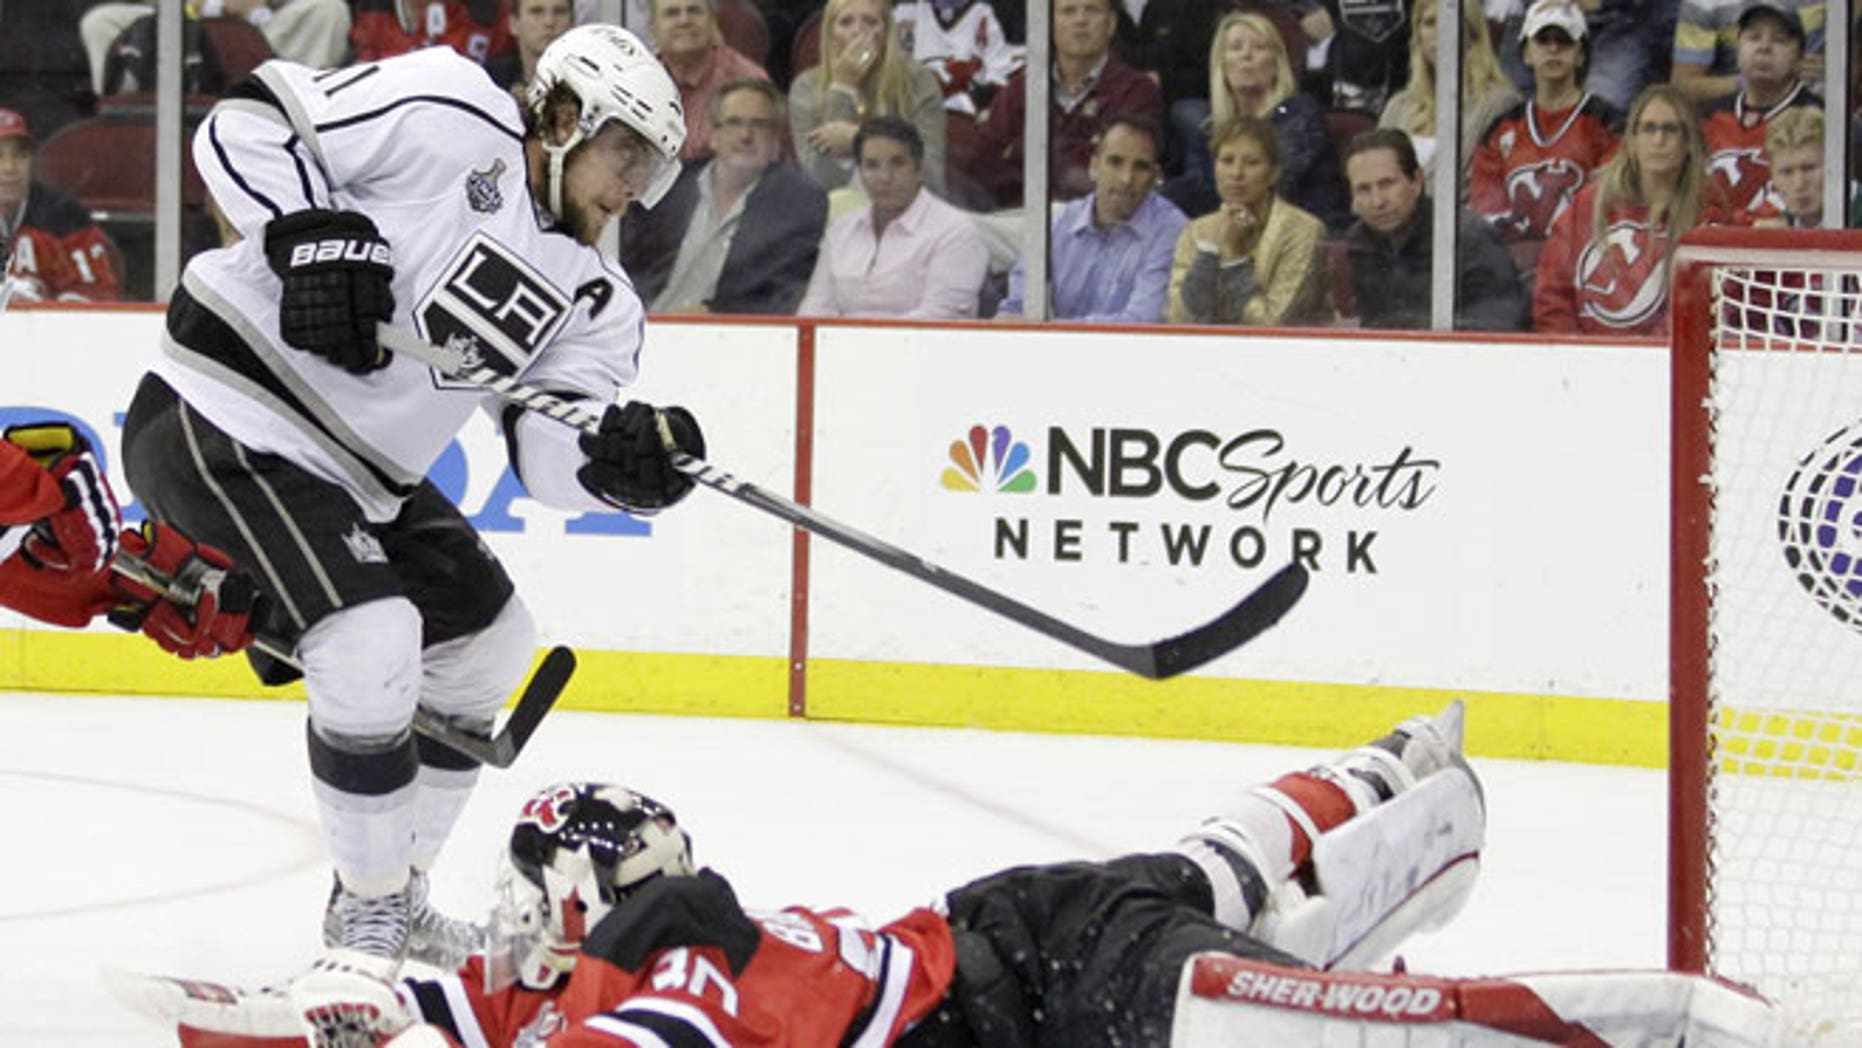 May 30, 2012: Los Angeles Kings' Anze Kopitar, of Slovenia, scores past New Jersey Devils' Martin Brodeur during overtime in Game 1 of the NHL hockey Stanley Cup finals in Newark, N.J. The Kings won 2-1.